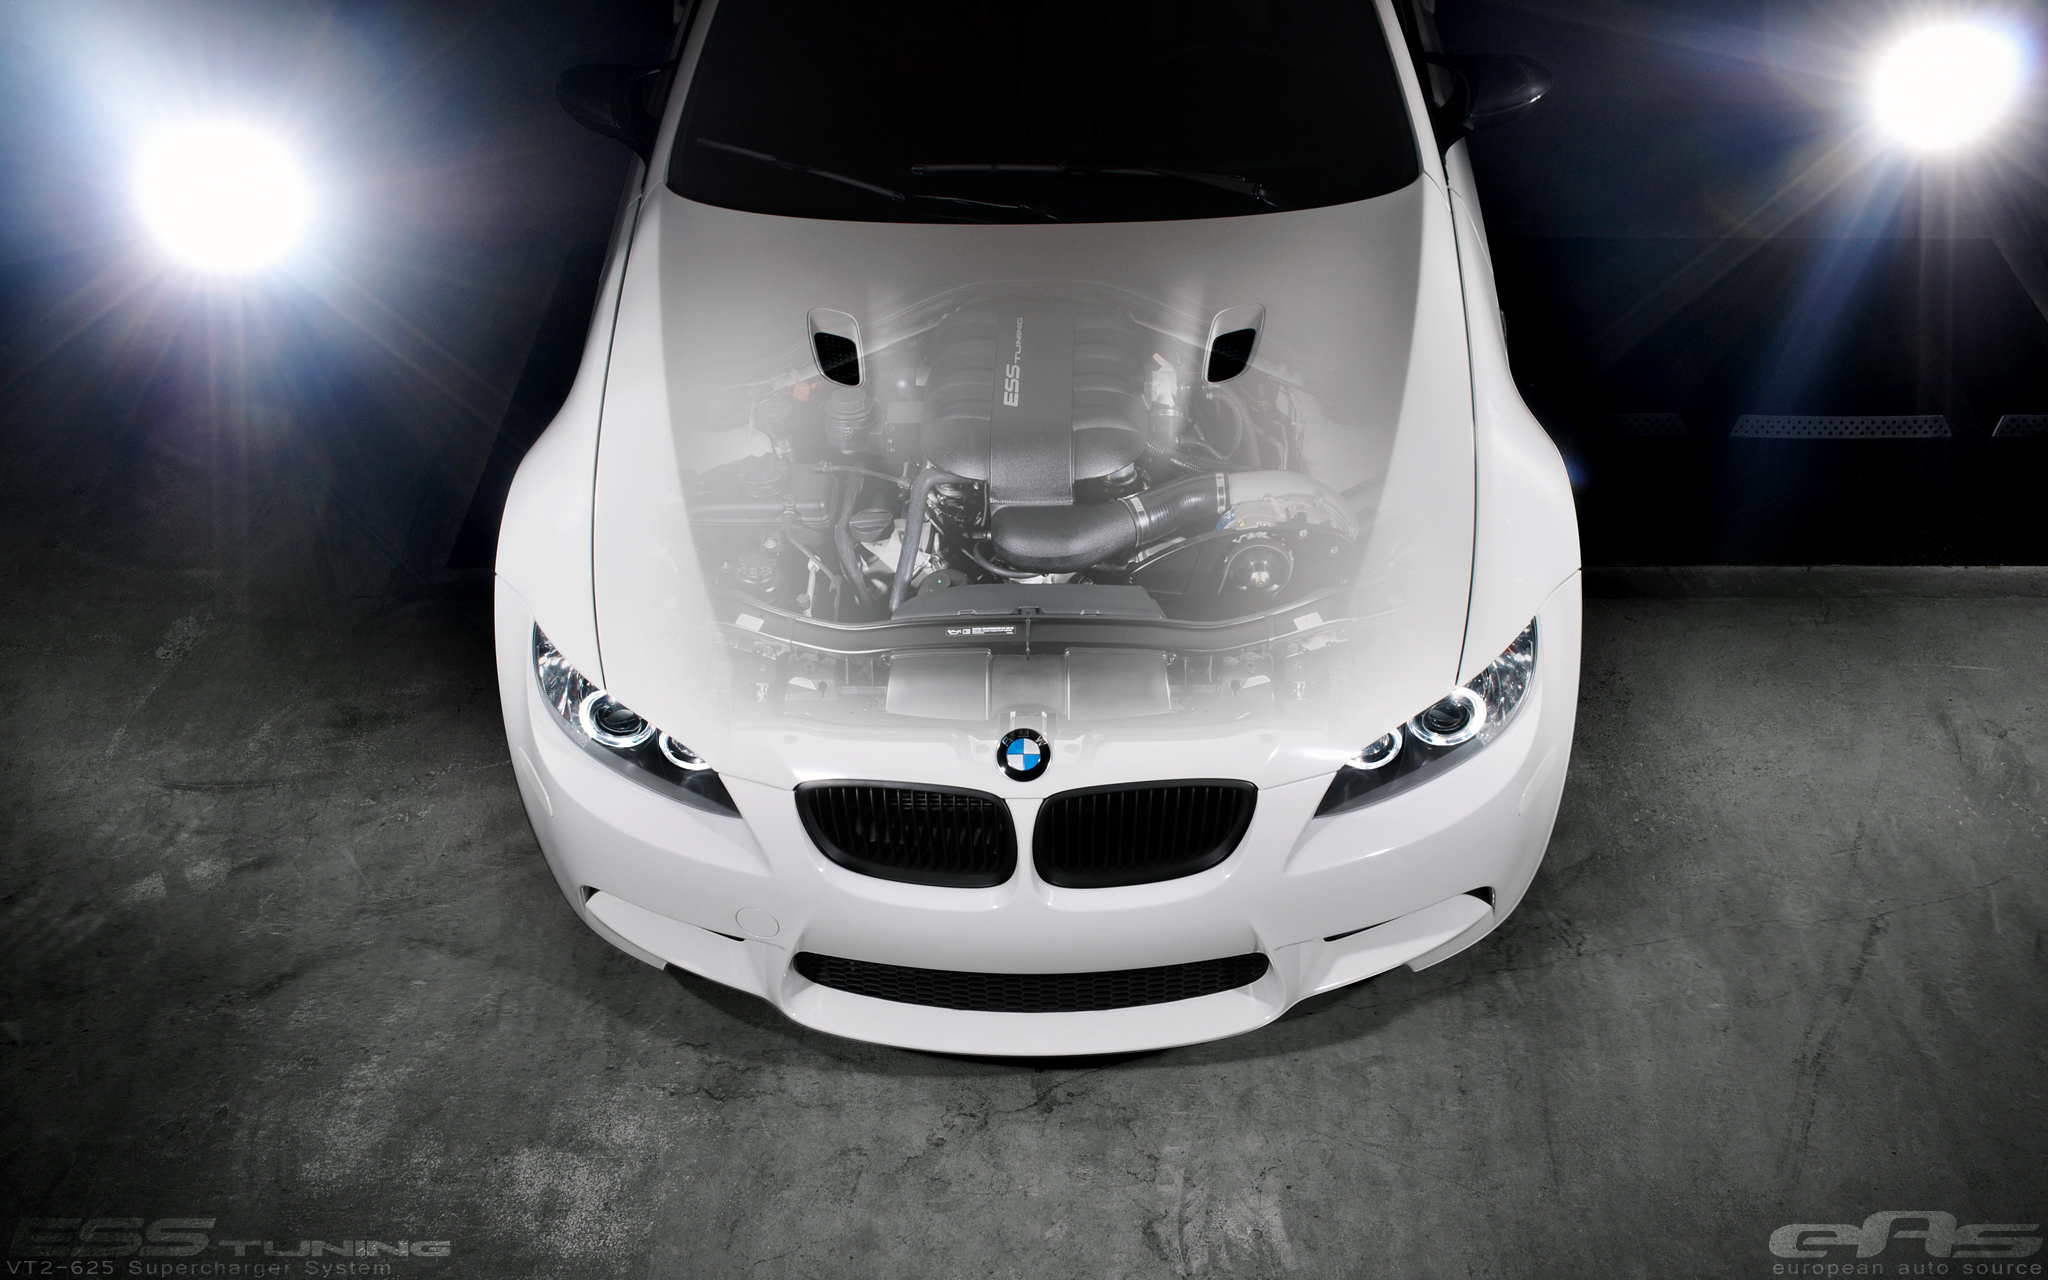 ESS VT2-625 Supercharged E92 M3 by eas